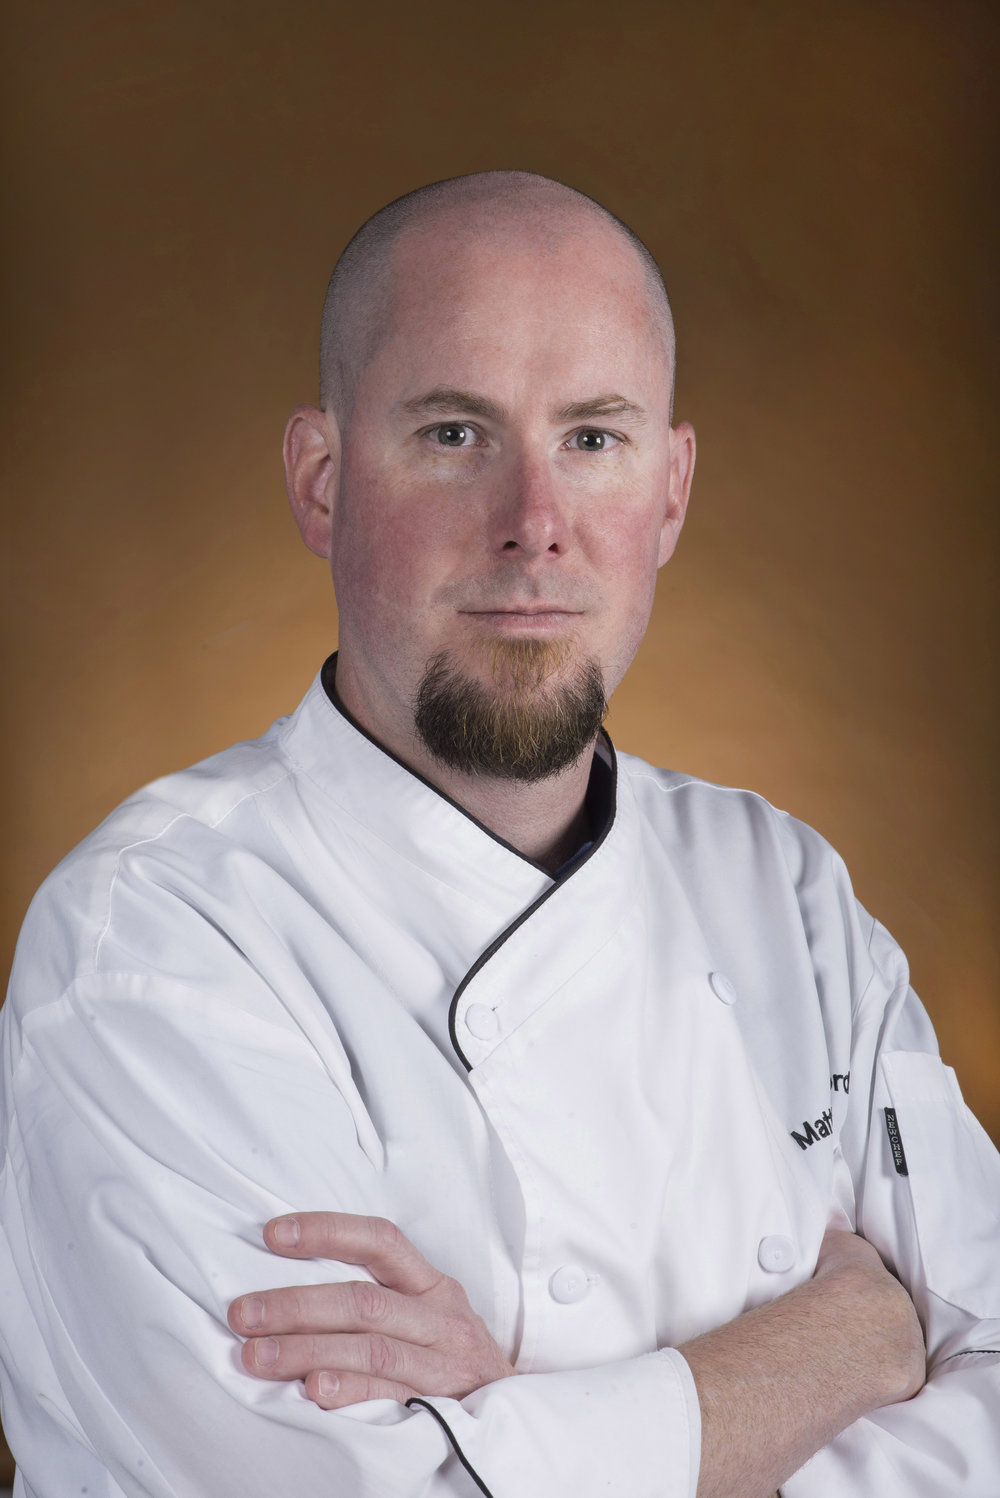 Chef_Matt_Crawford_The_Finn_Prescott_AZ.jpg